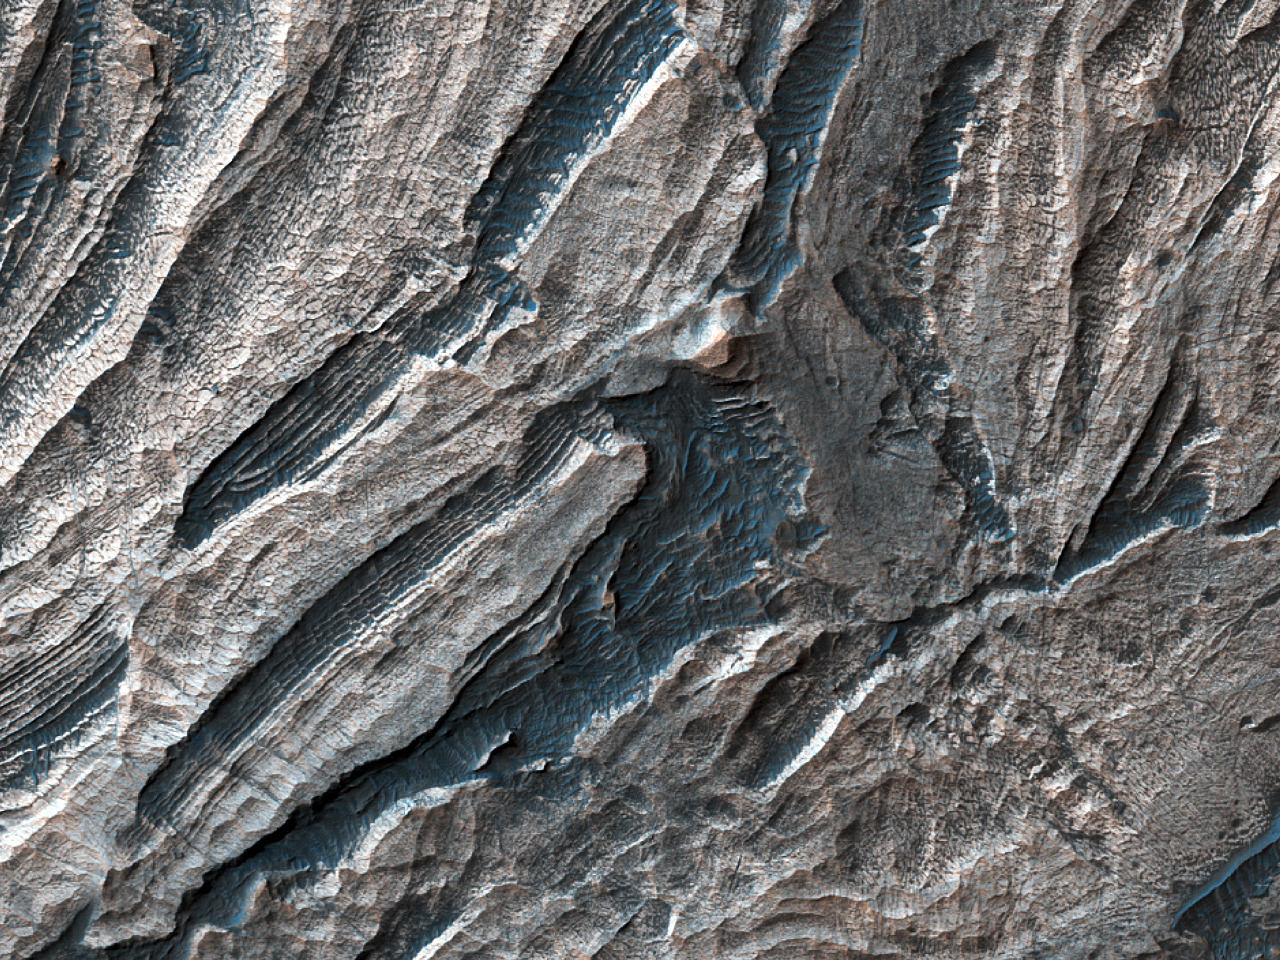 Survey Layering and Faulting in Layered Deposits in Candor Chasma